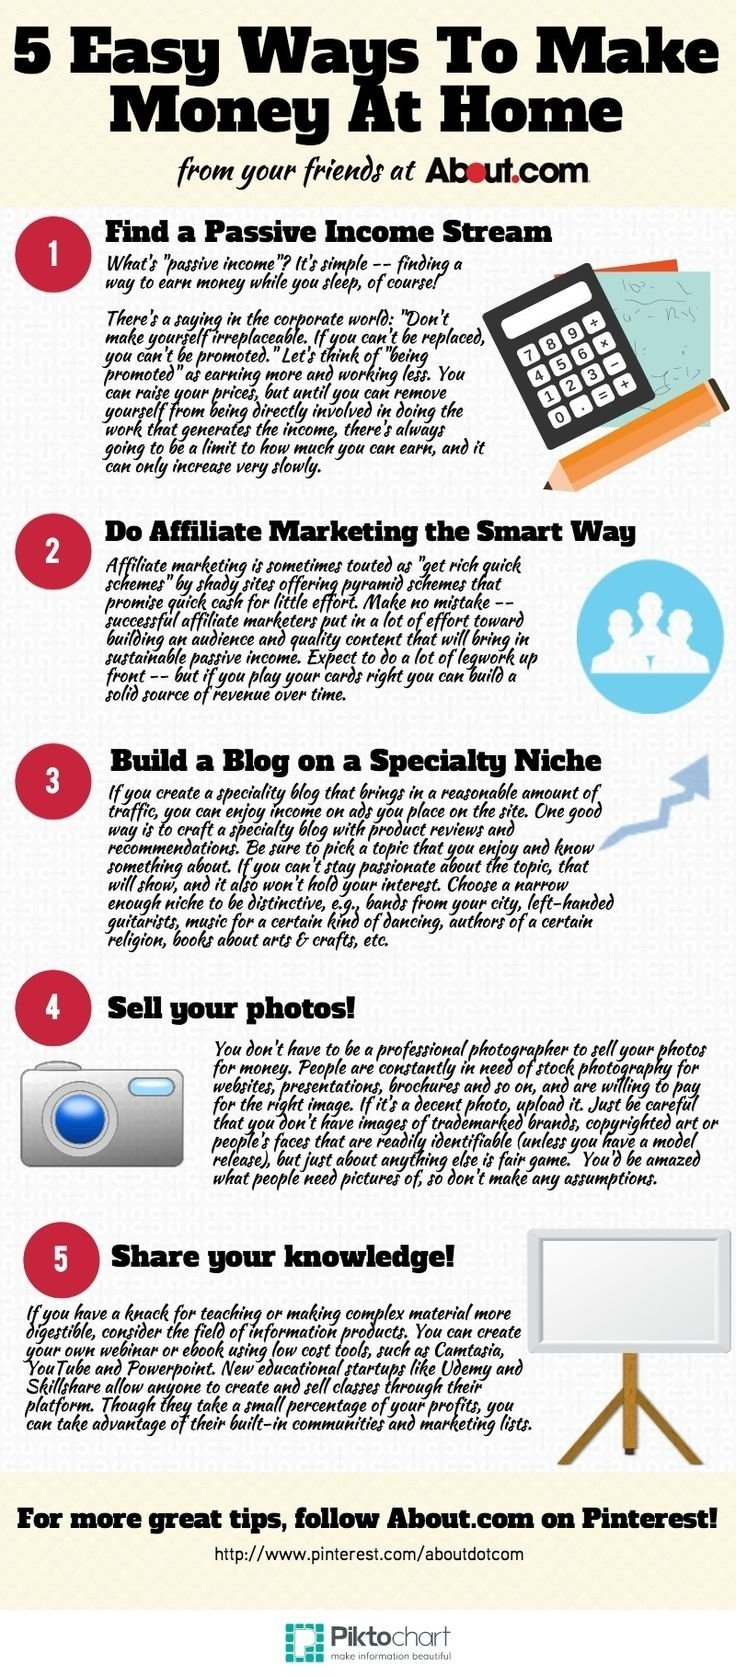 10 Fantastic Ideas To Earn Extra Money 20 best real easy ways to make money on internet images on pinterest 2020